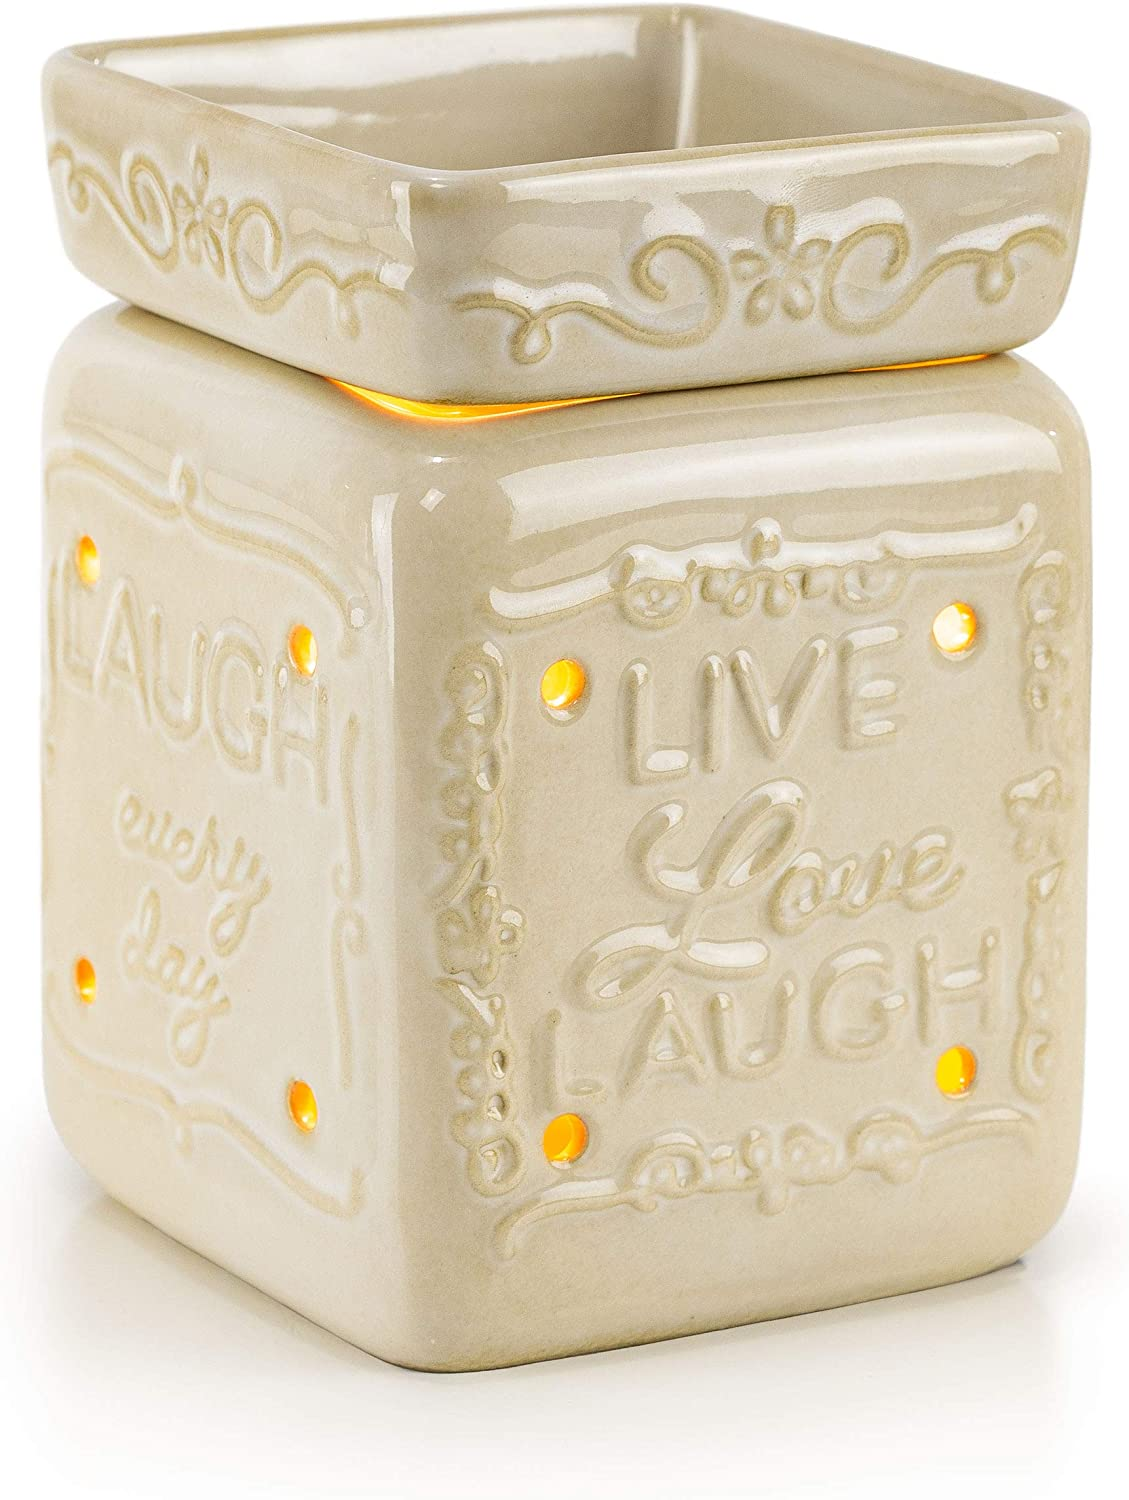 VP Home Ceramic Fragrance Warmer (Live Love Laugh)